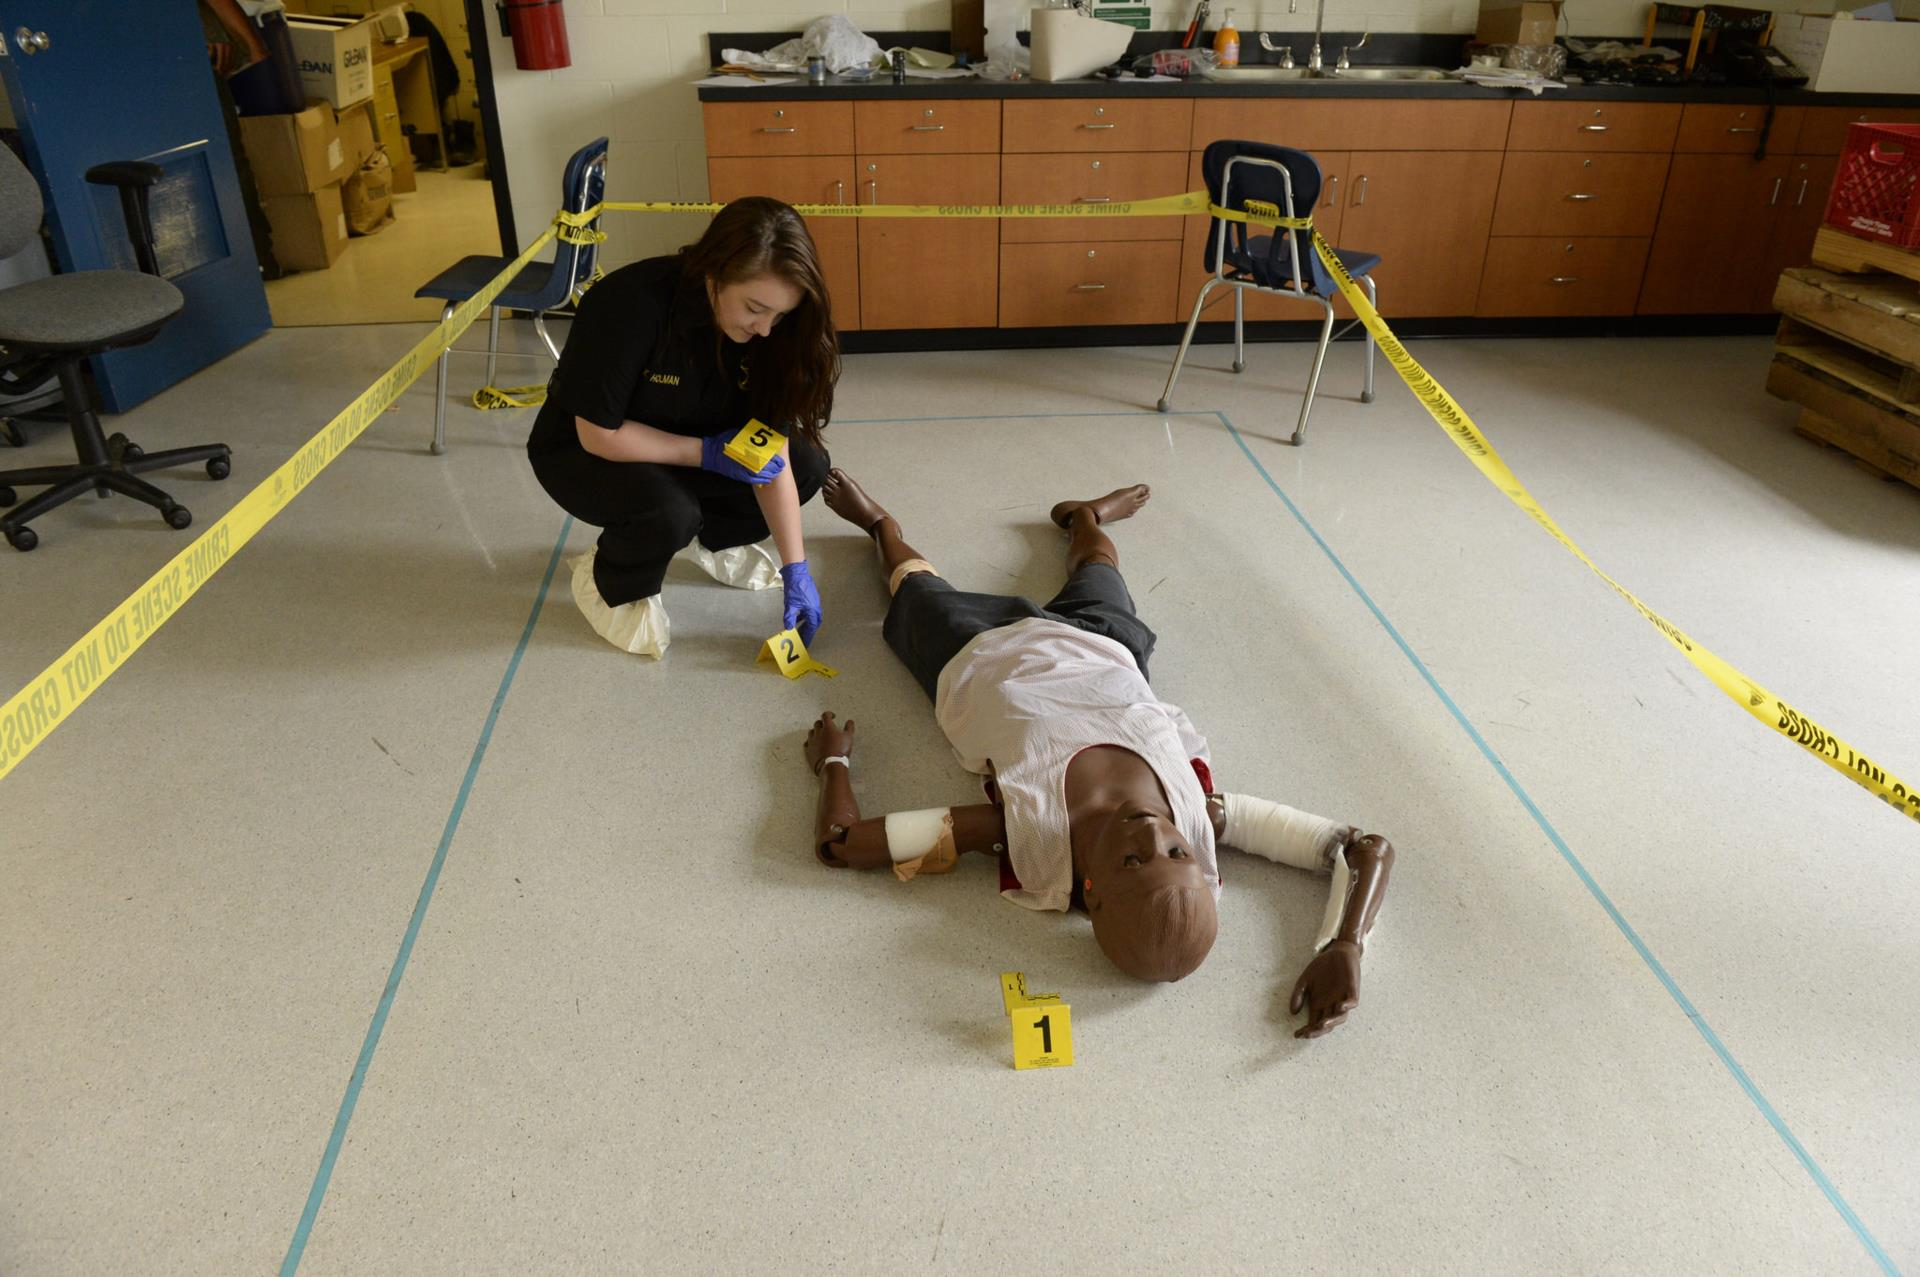 A picture of a student investigating a crime scene